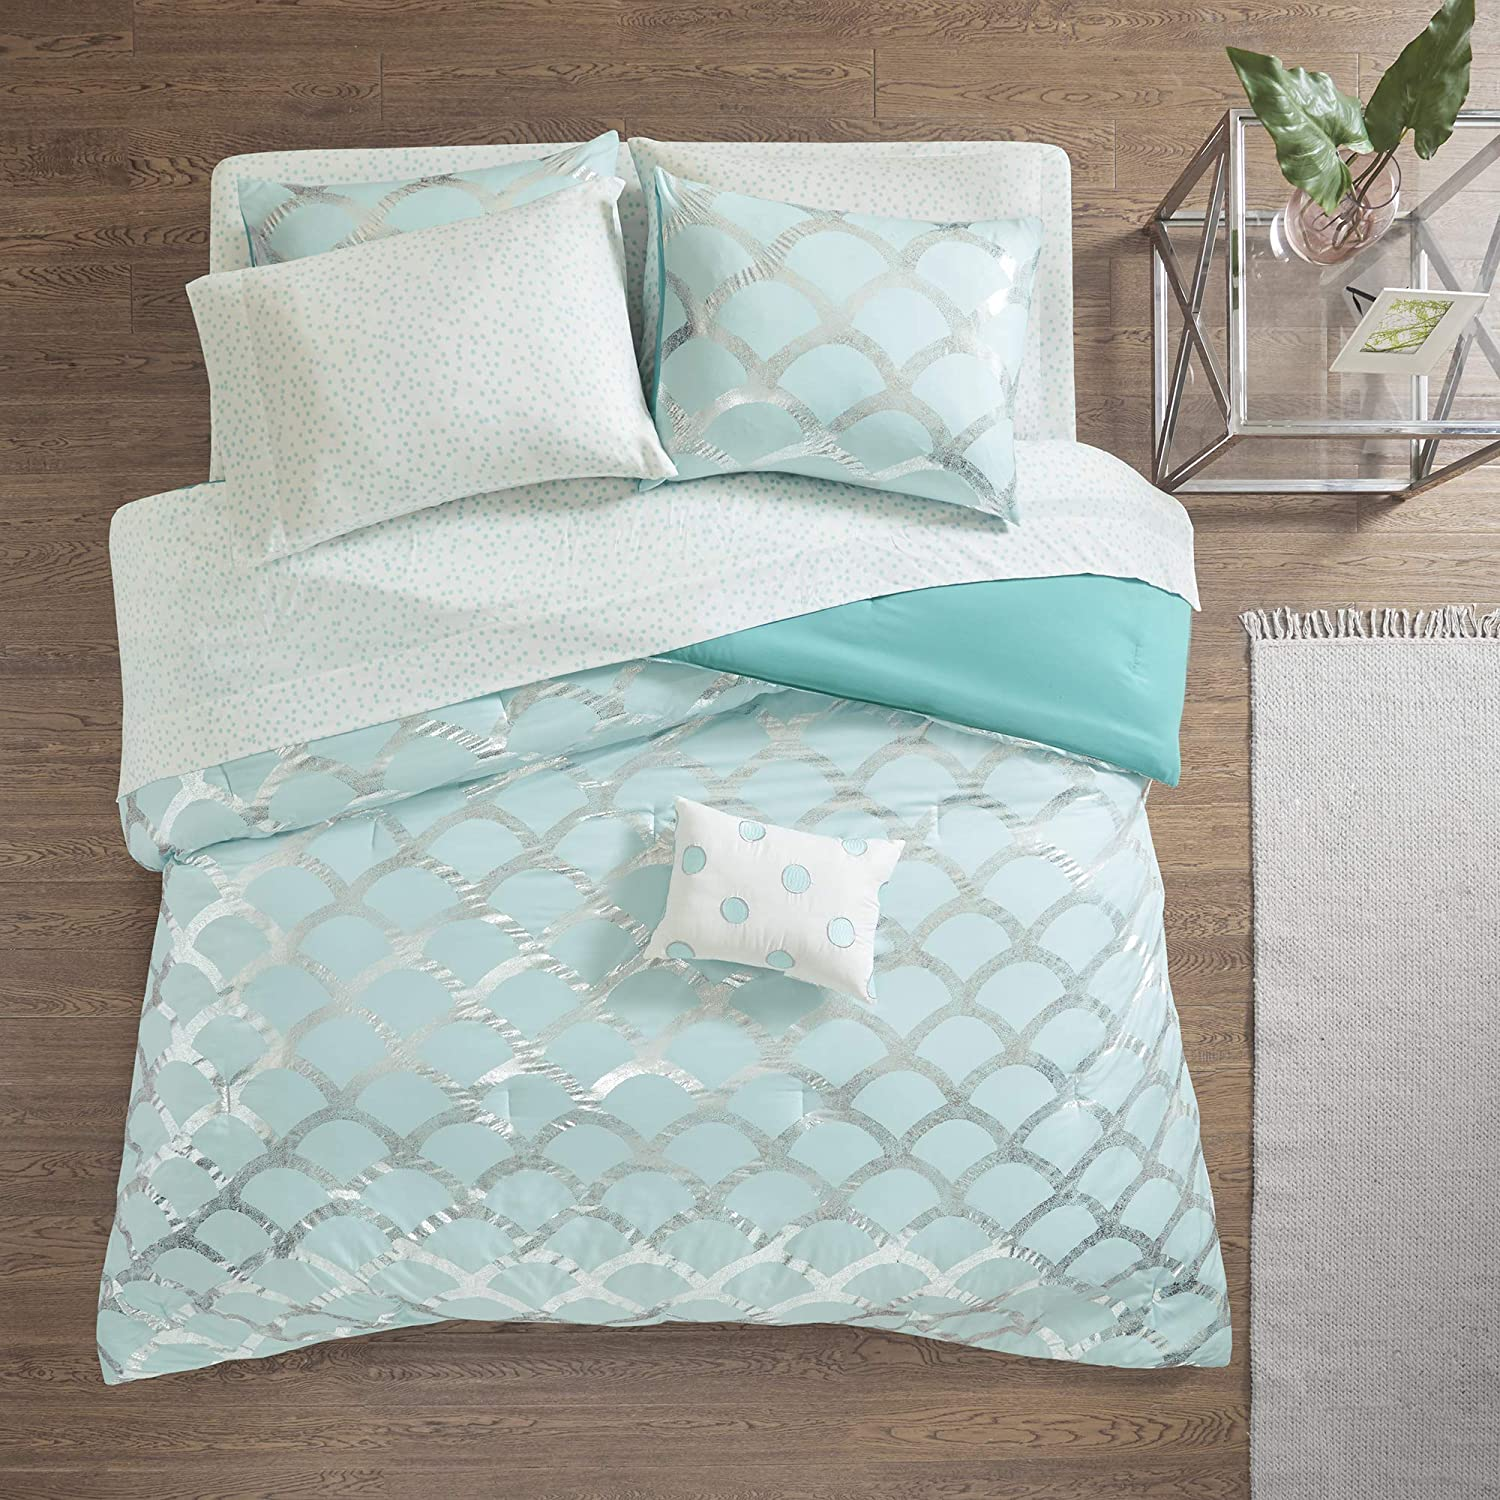 Intelligent Design Lorna Complete Bed In A Bag Trendy Metallic Mermaid Scale Scallop Print Comforter With Polka Dots Sheet Set Teen Bedding For Girls Bedroom Twin Xl Aqua 6 Piece Id10 1573